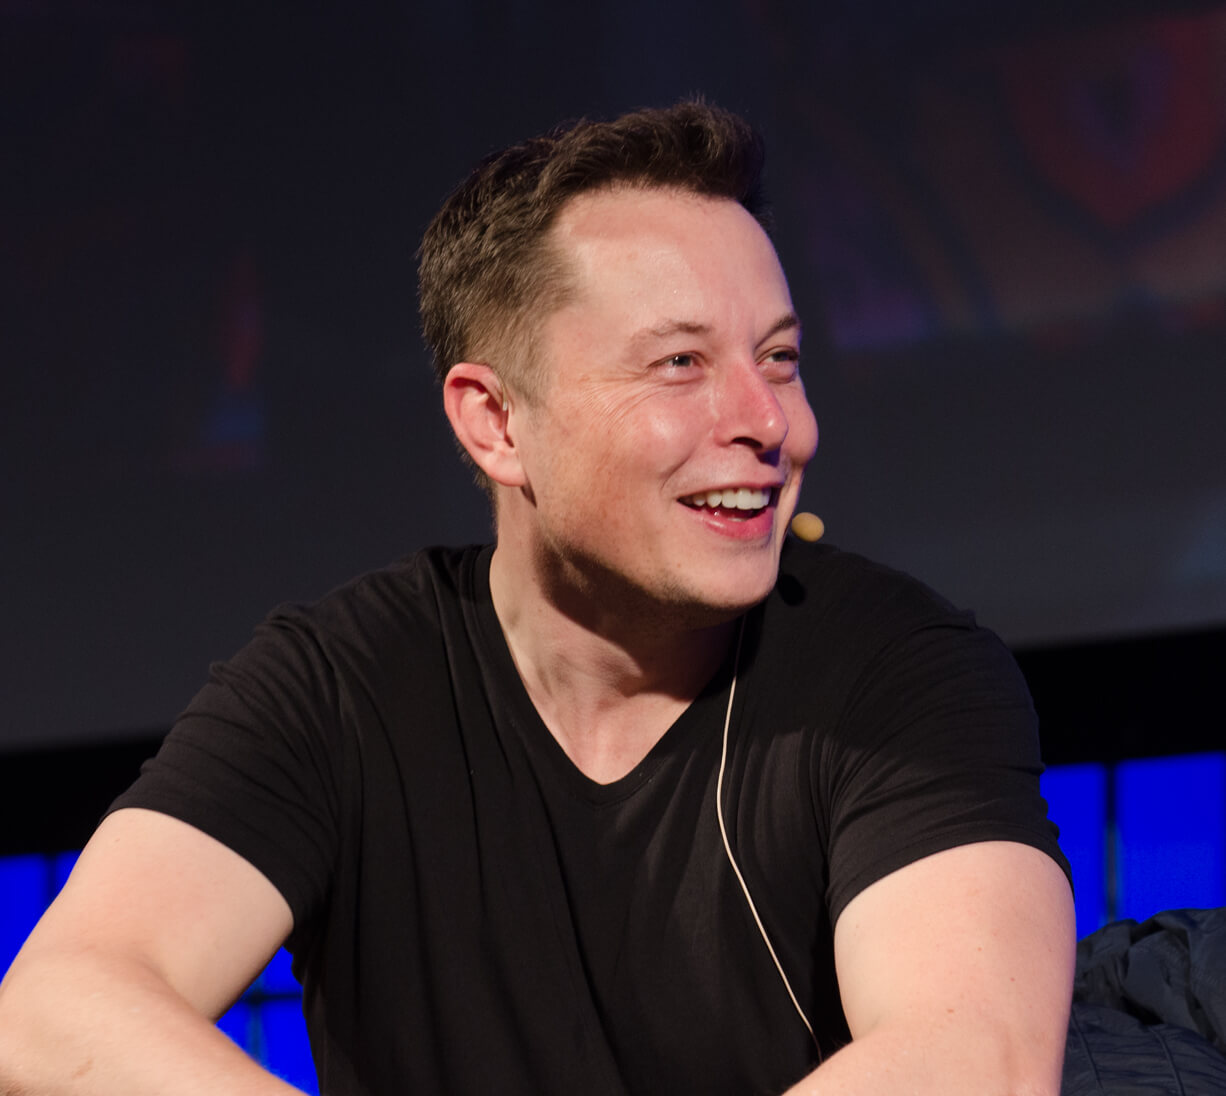 Elon Musk's Hyperloop Idea May Soon Become Reality